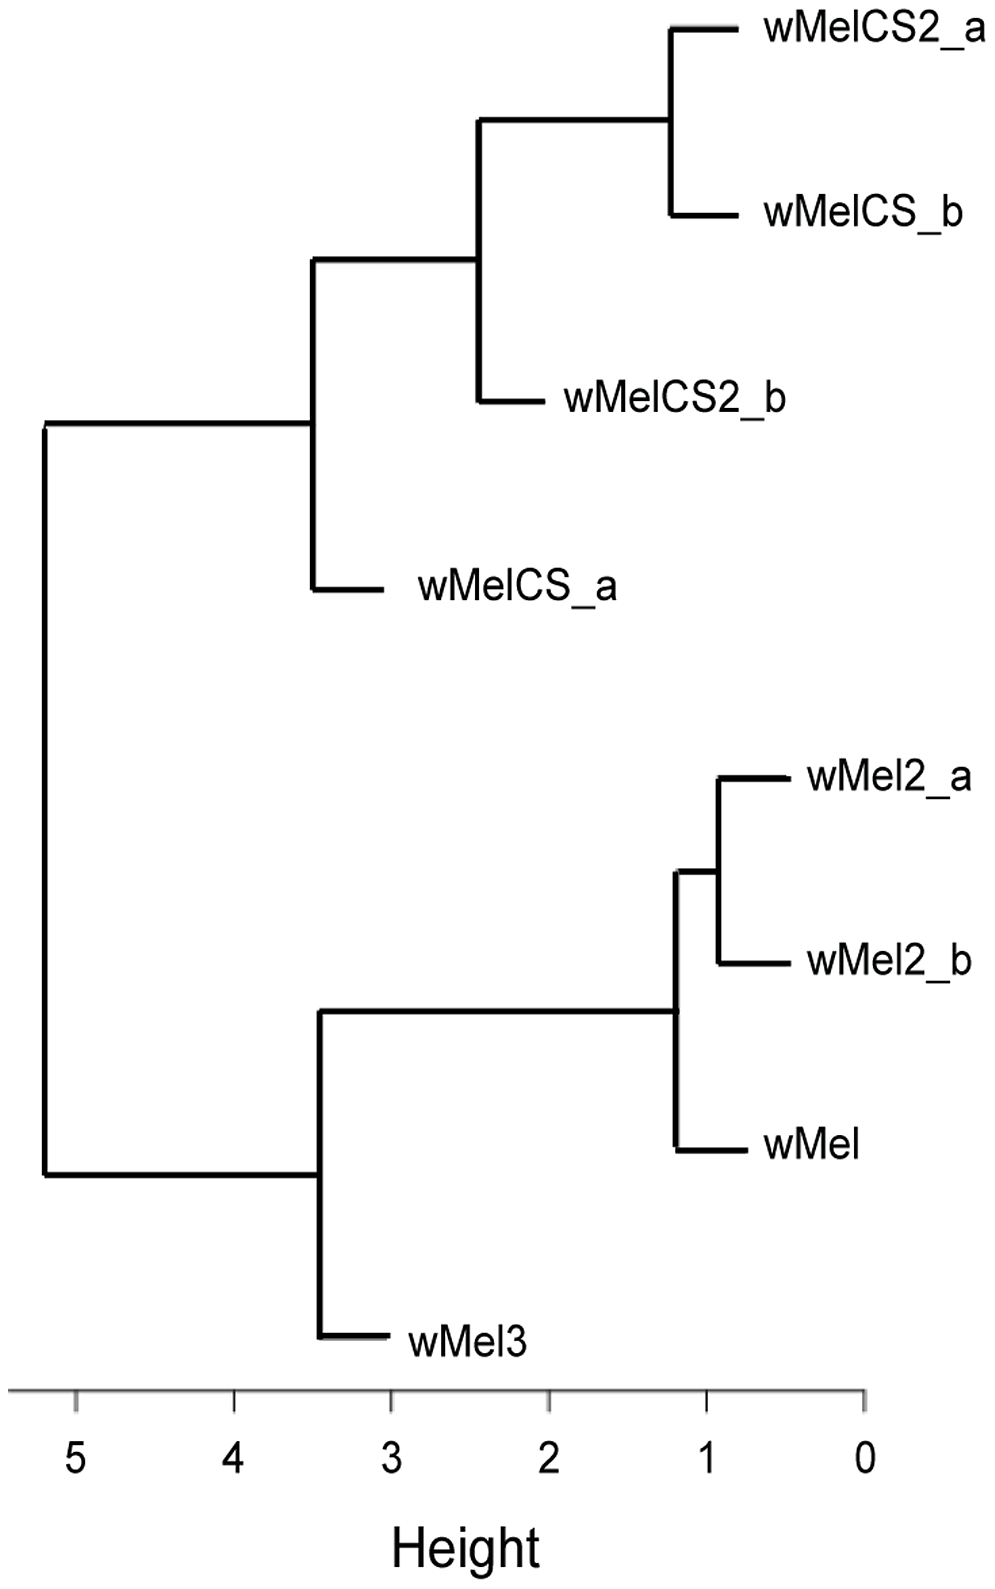 Phenotype-based cluster analysis of wMel variants.